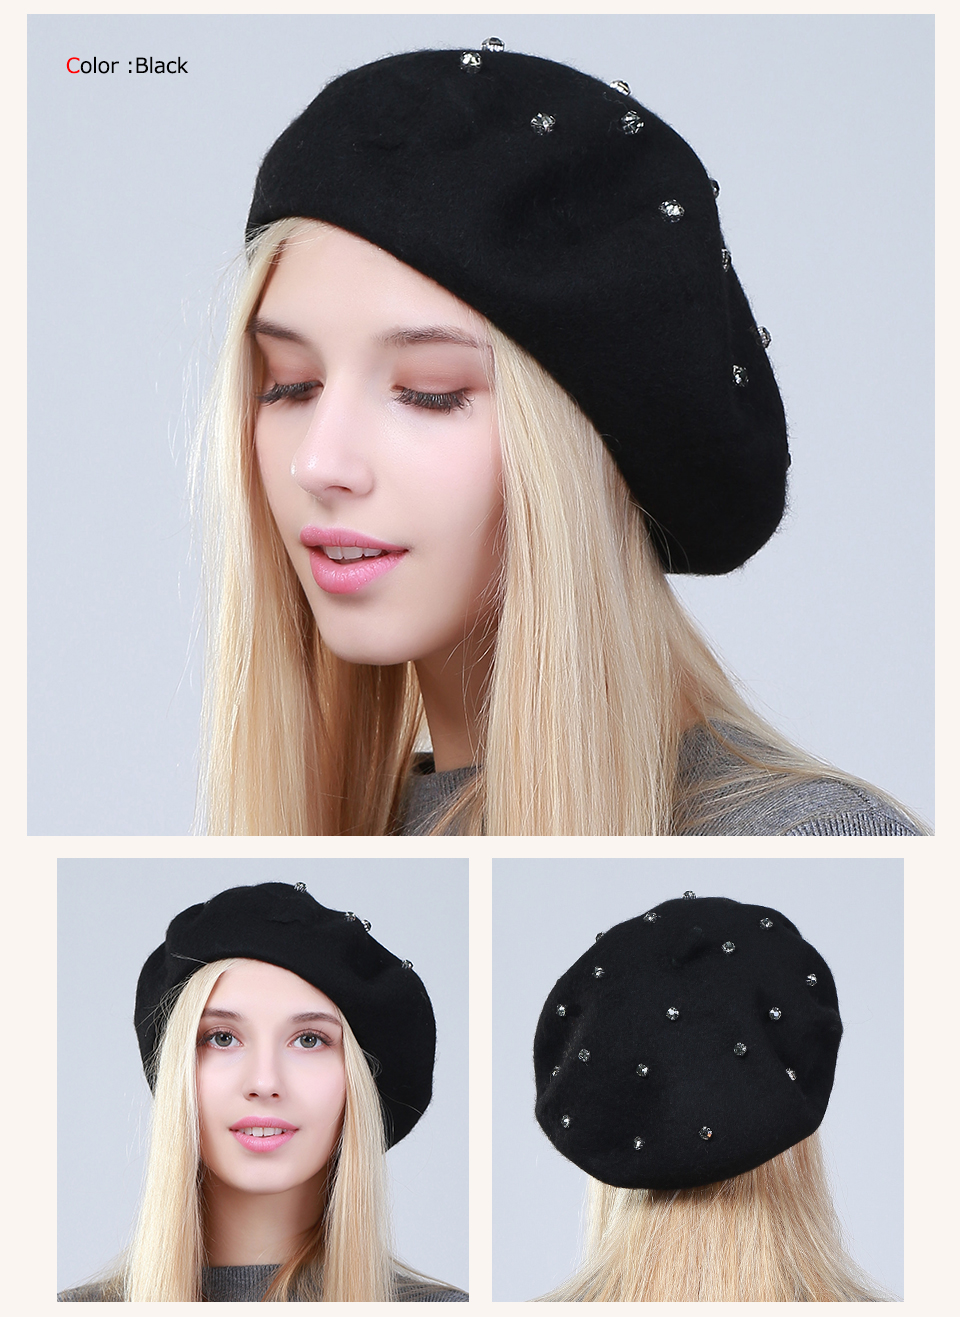 443dde8908577 Product Name Geebro Women s Beret Hat Fashion Solid Color Wool Knitted  Berets With Rhinestones Ladies French Artist Beanie Beret Hat GS104